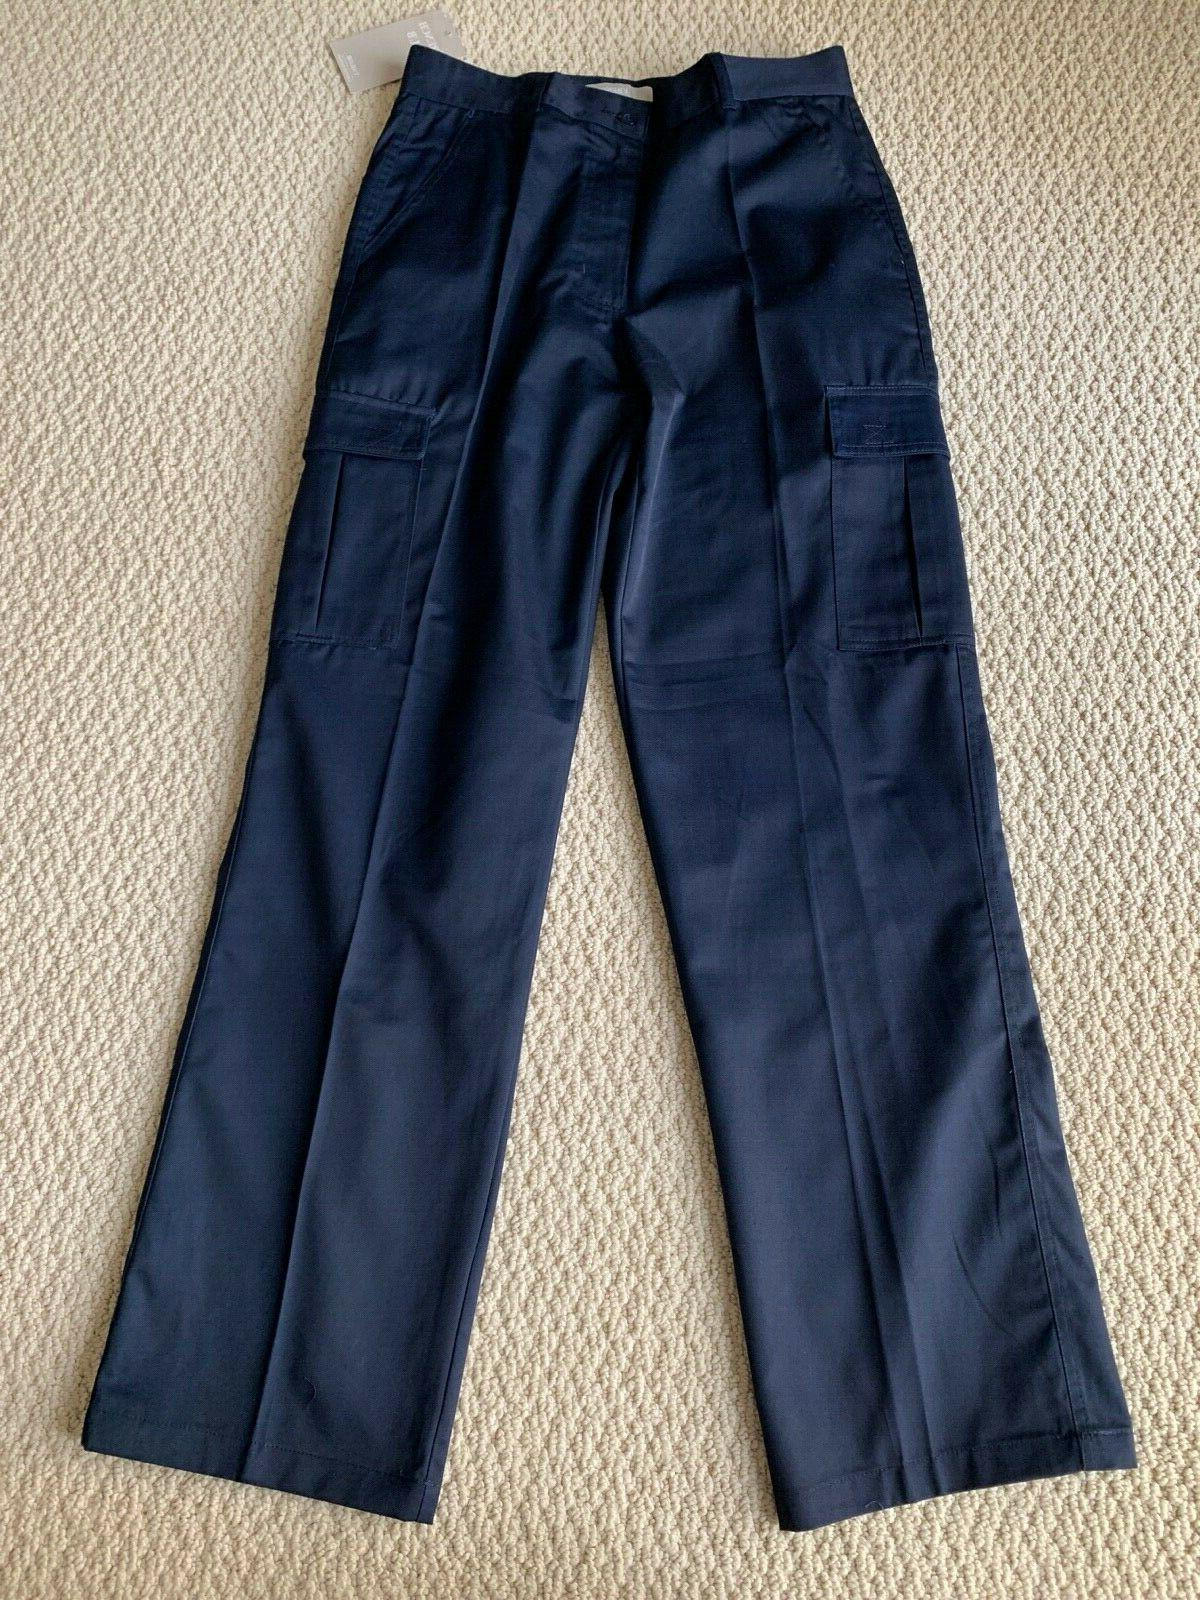 NWT Men's French Classic SIZE